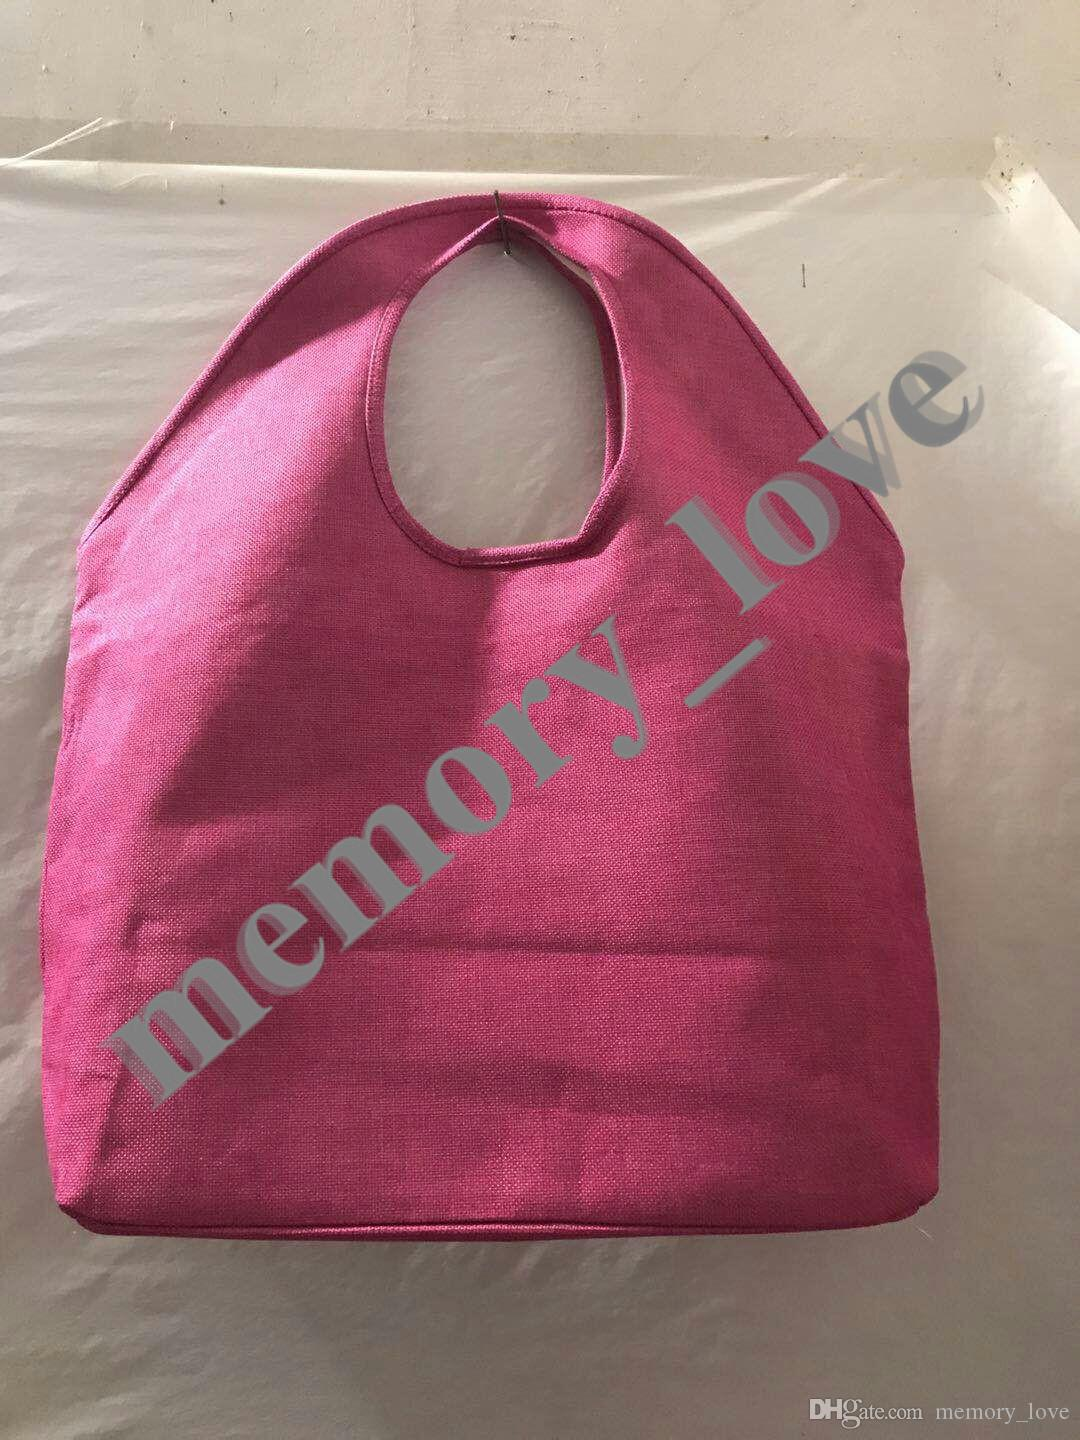 Jute tote bag Large Women big size shopping Bag Casual Beach storage Luggage Bags Open pocket IN STOCK